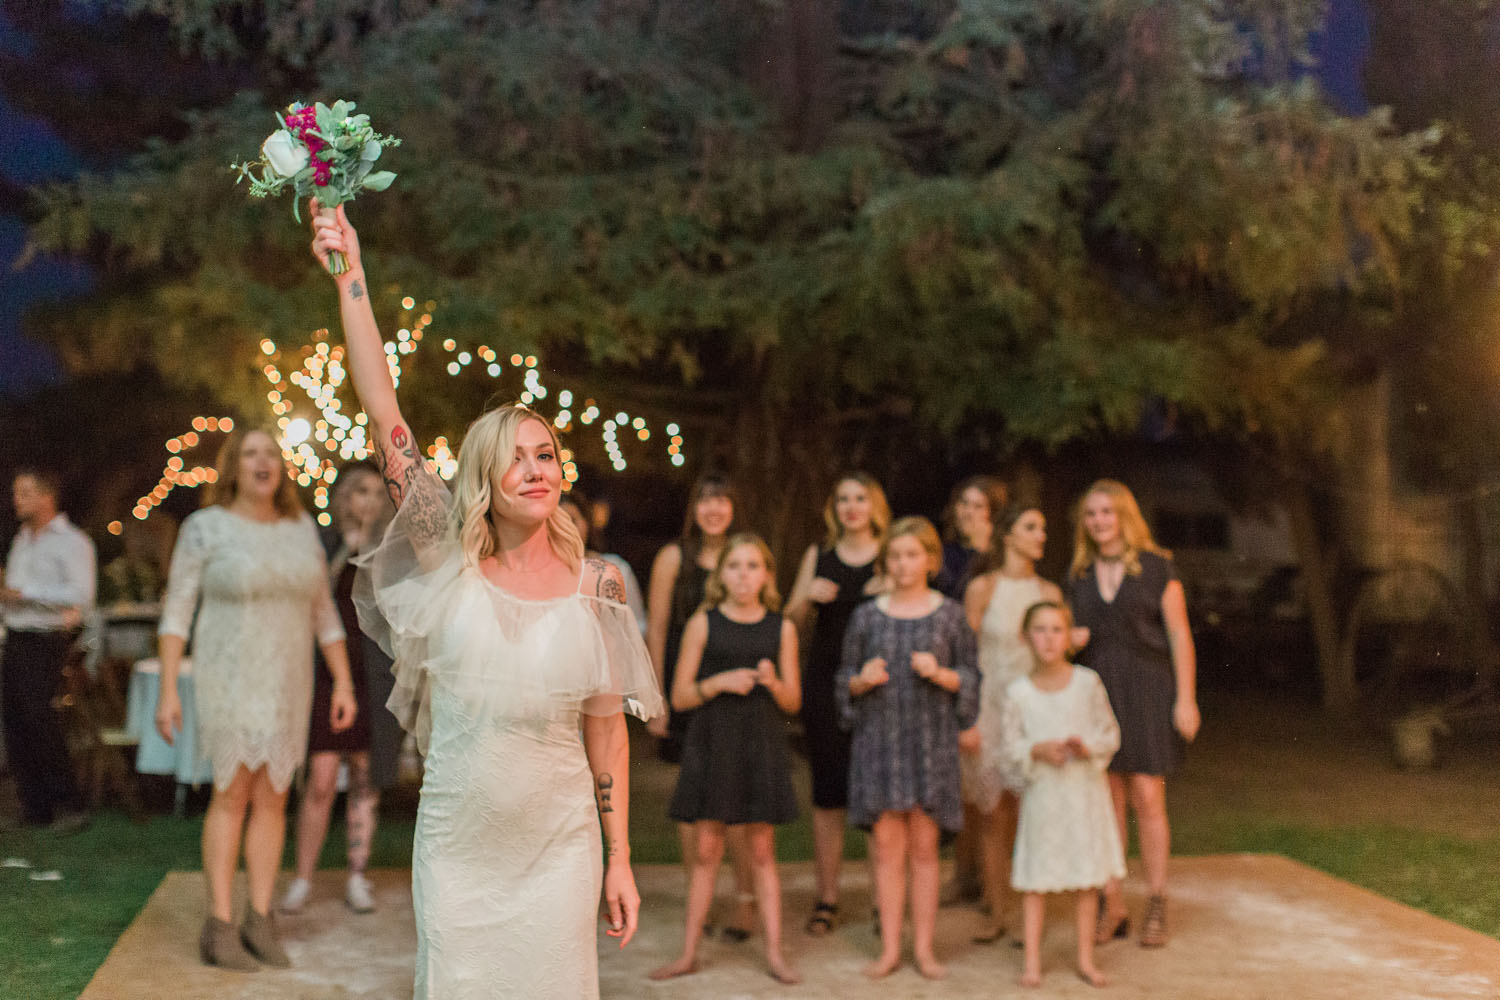 The Photege - Elegant Boho Wedding on Suburu Farm in Bakersfield California- Cassie and Darin Buoni-3084